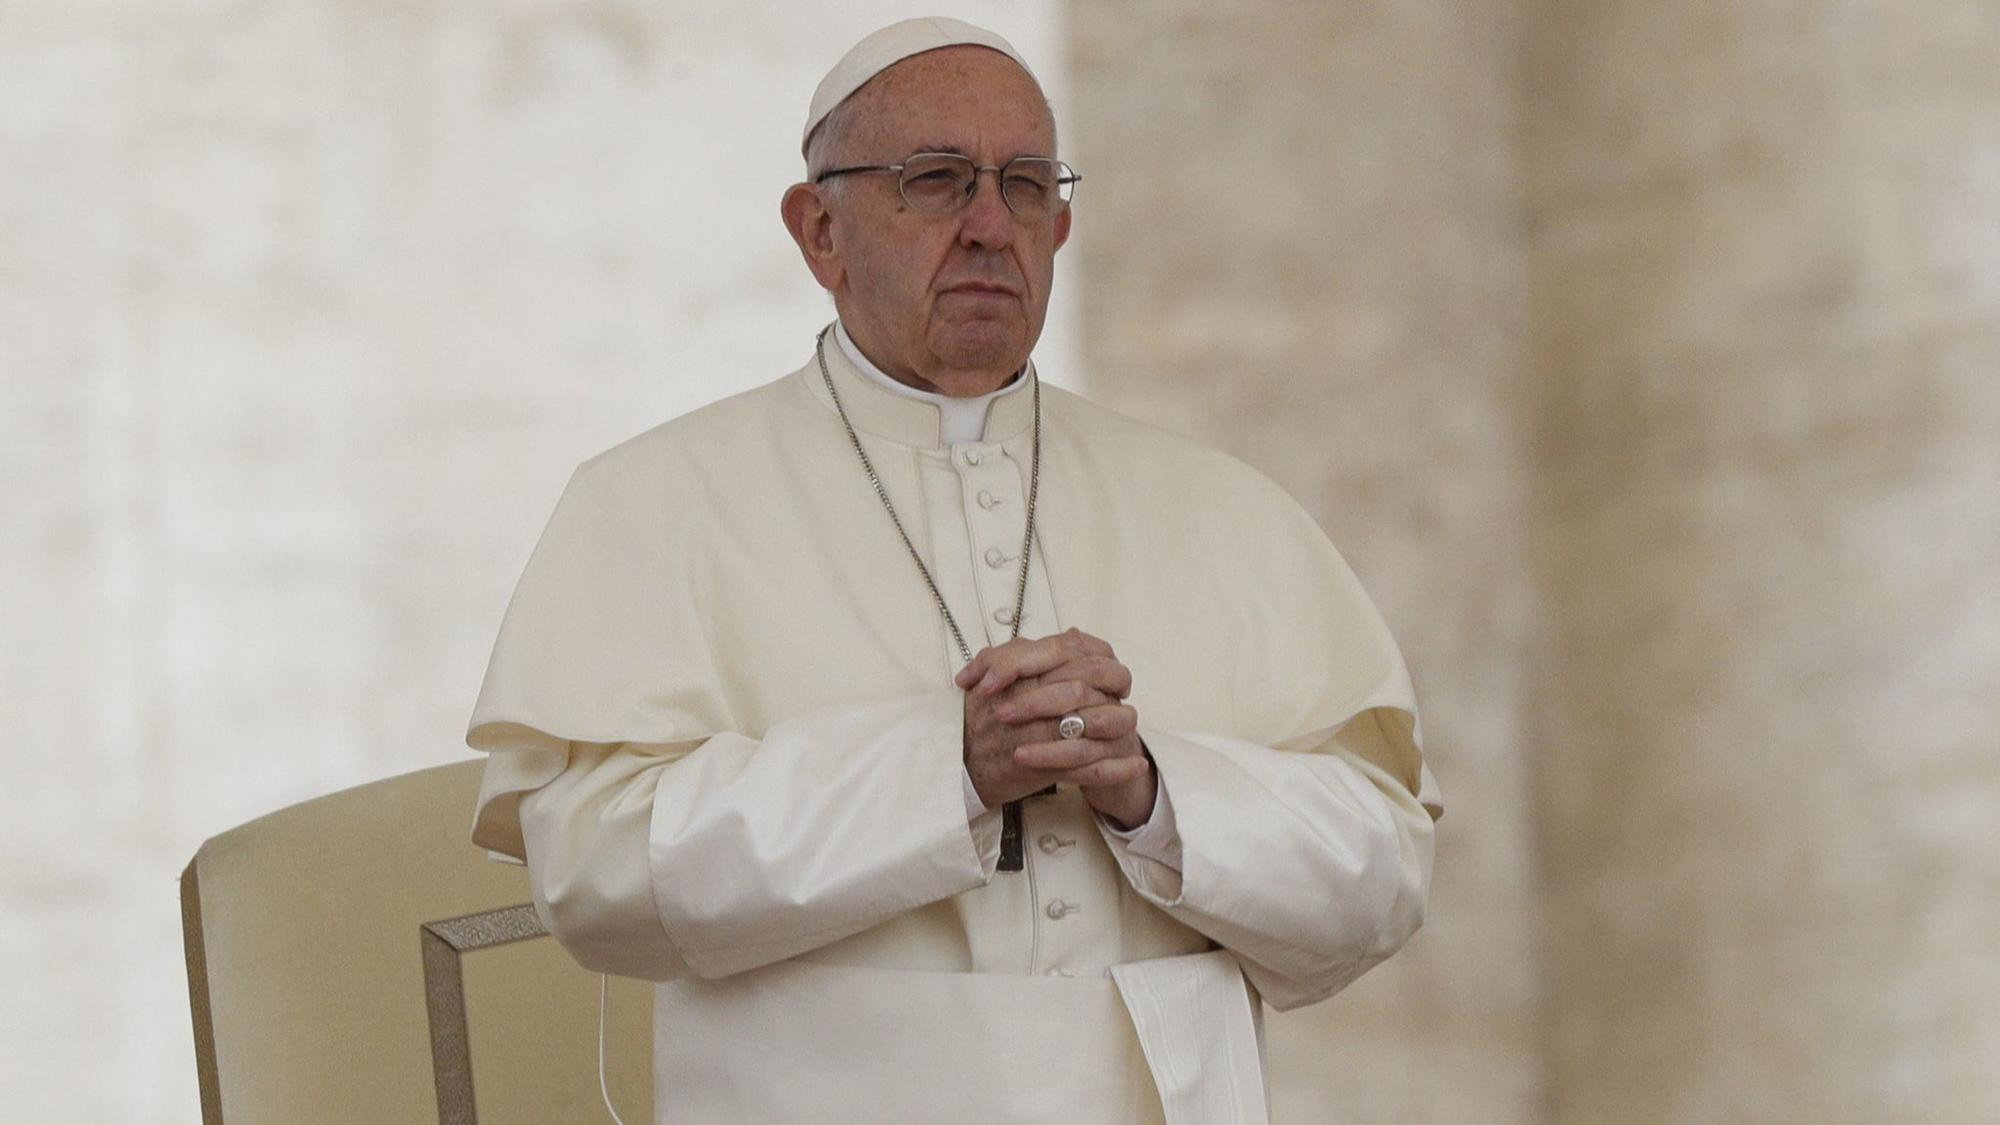 Did Pope Francis Really Change Catholic Teaching On The Death Penalty? Not Exactly.